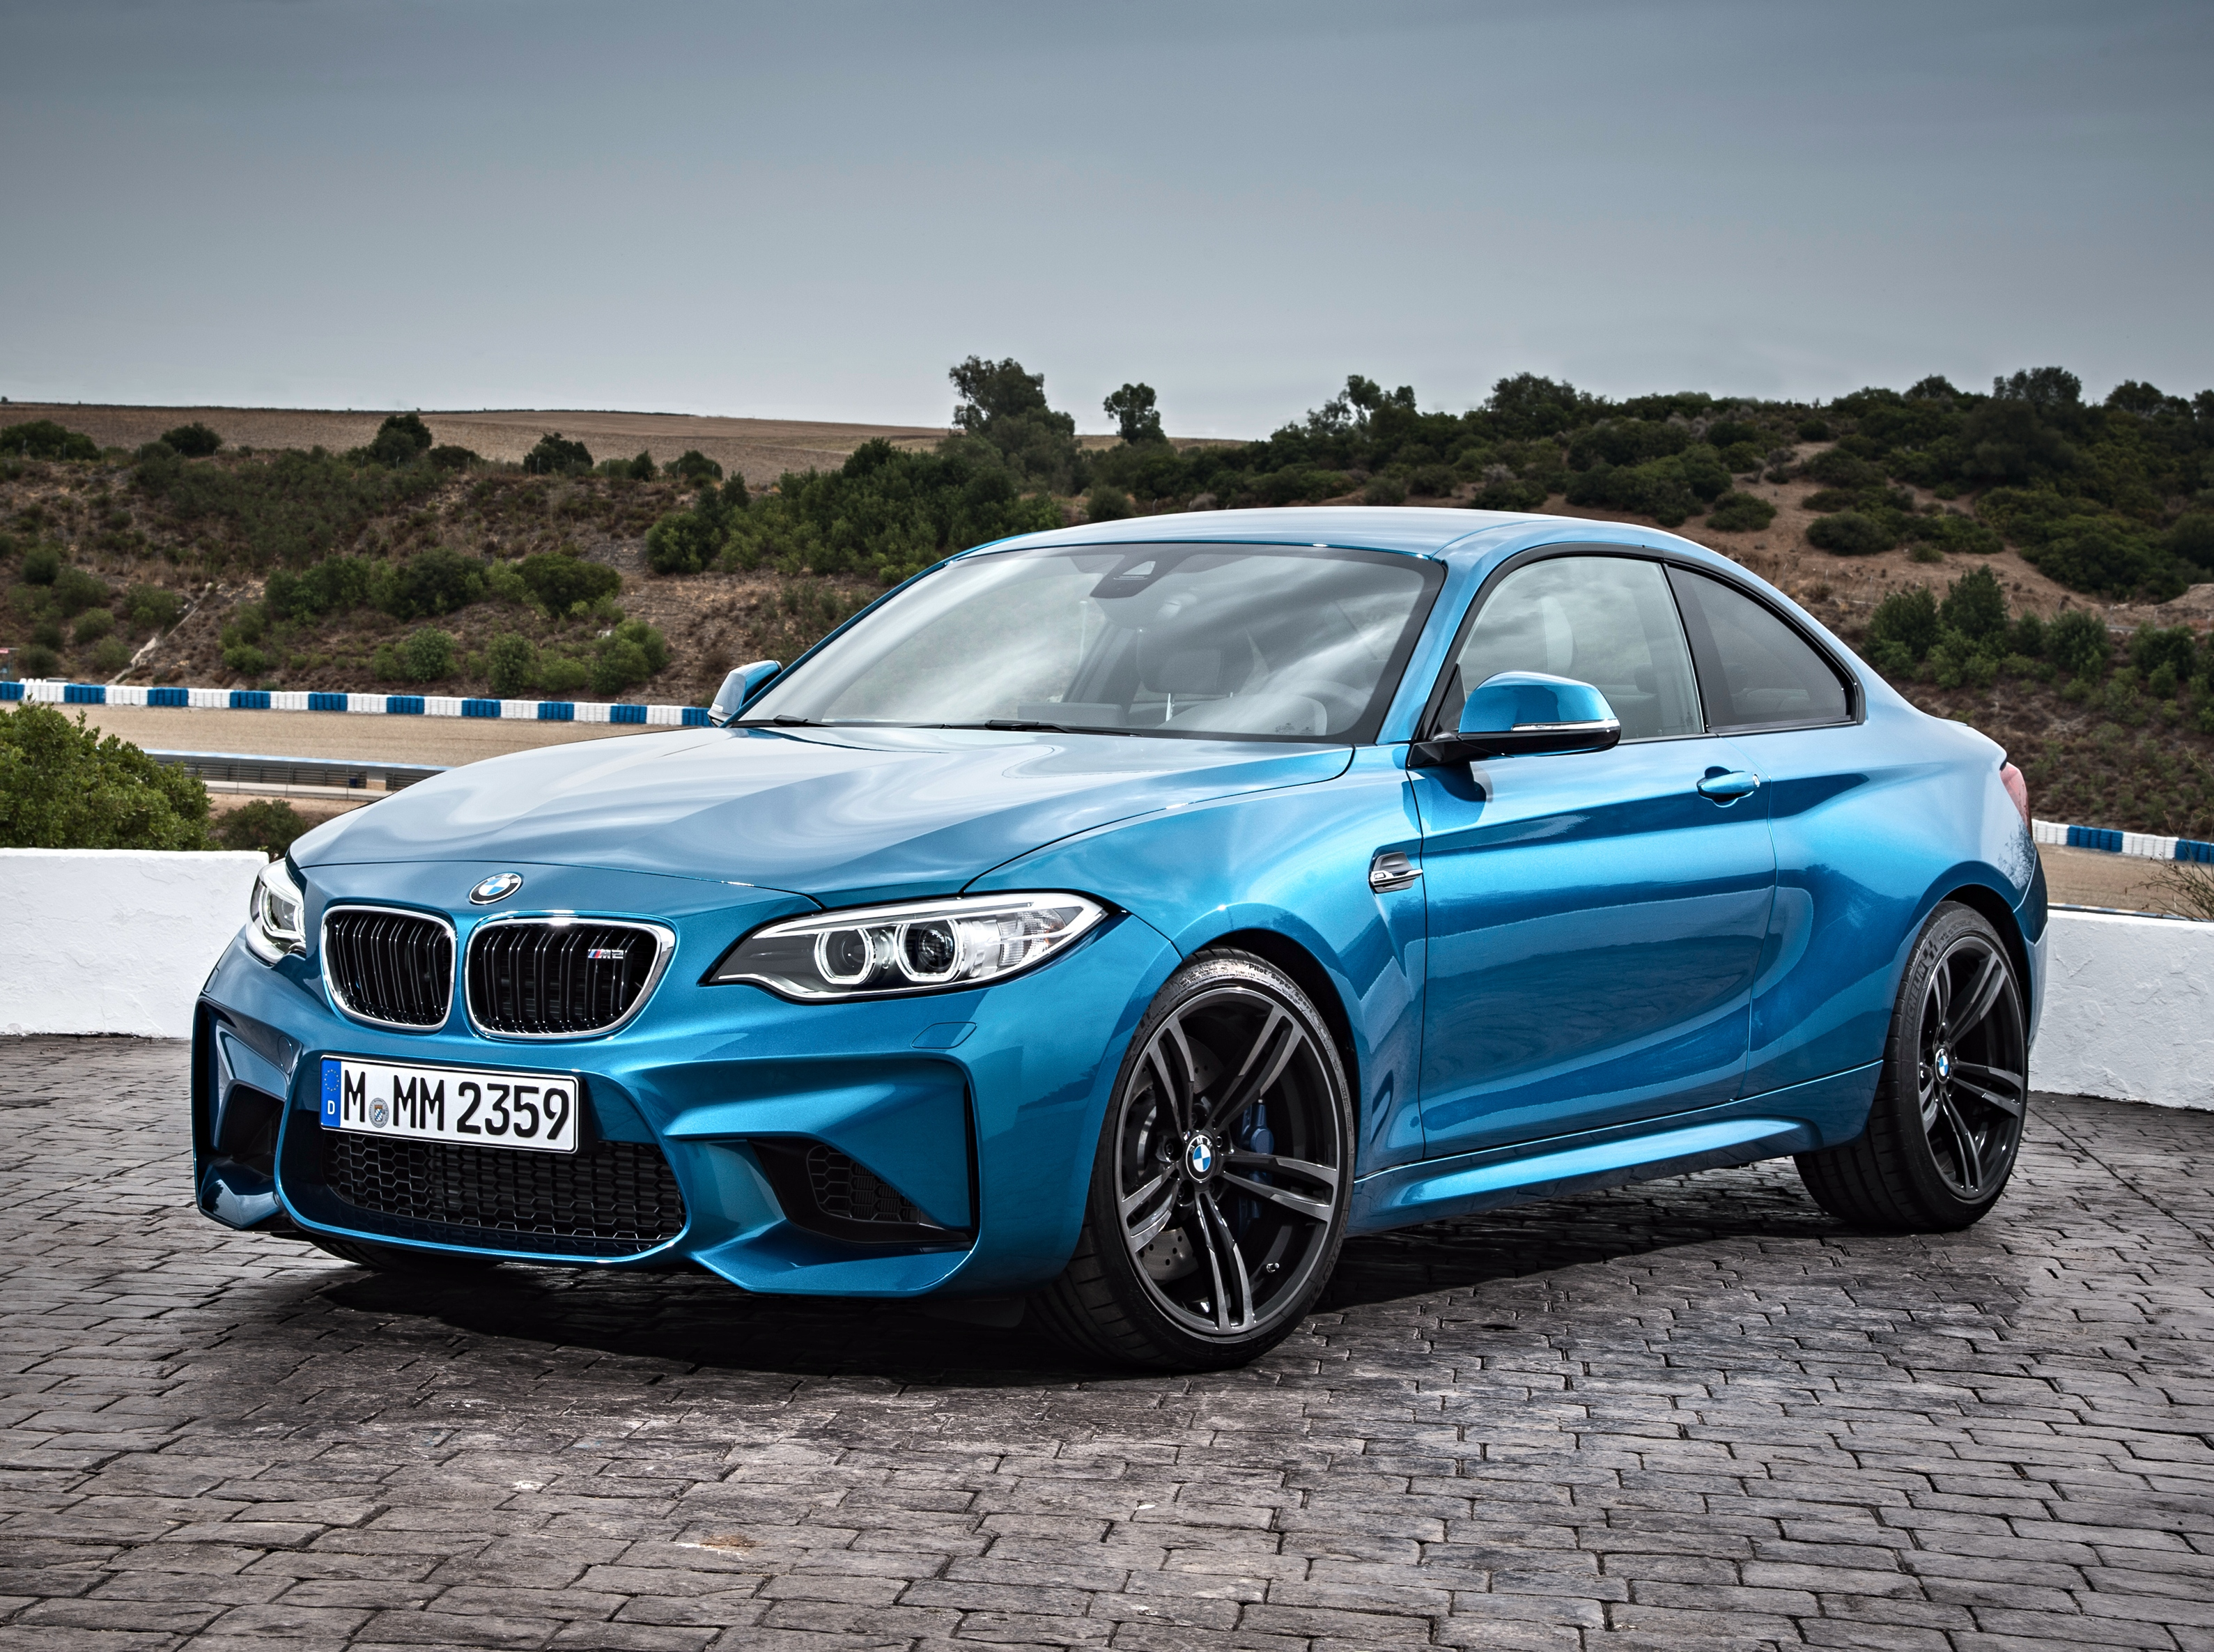 2015 BMW M2 Coupe (F87)